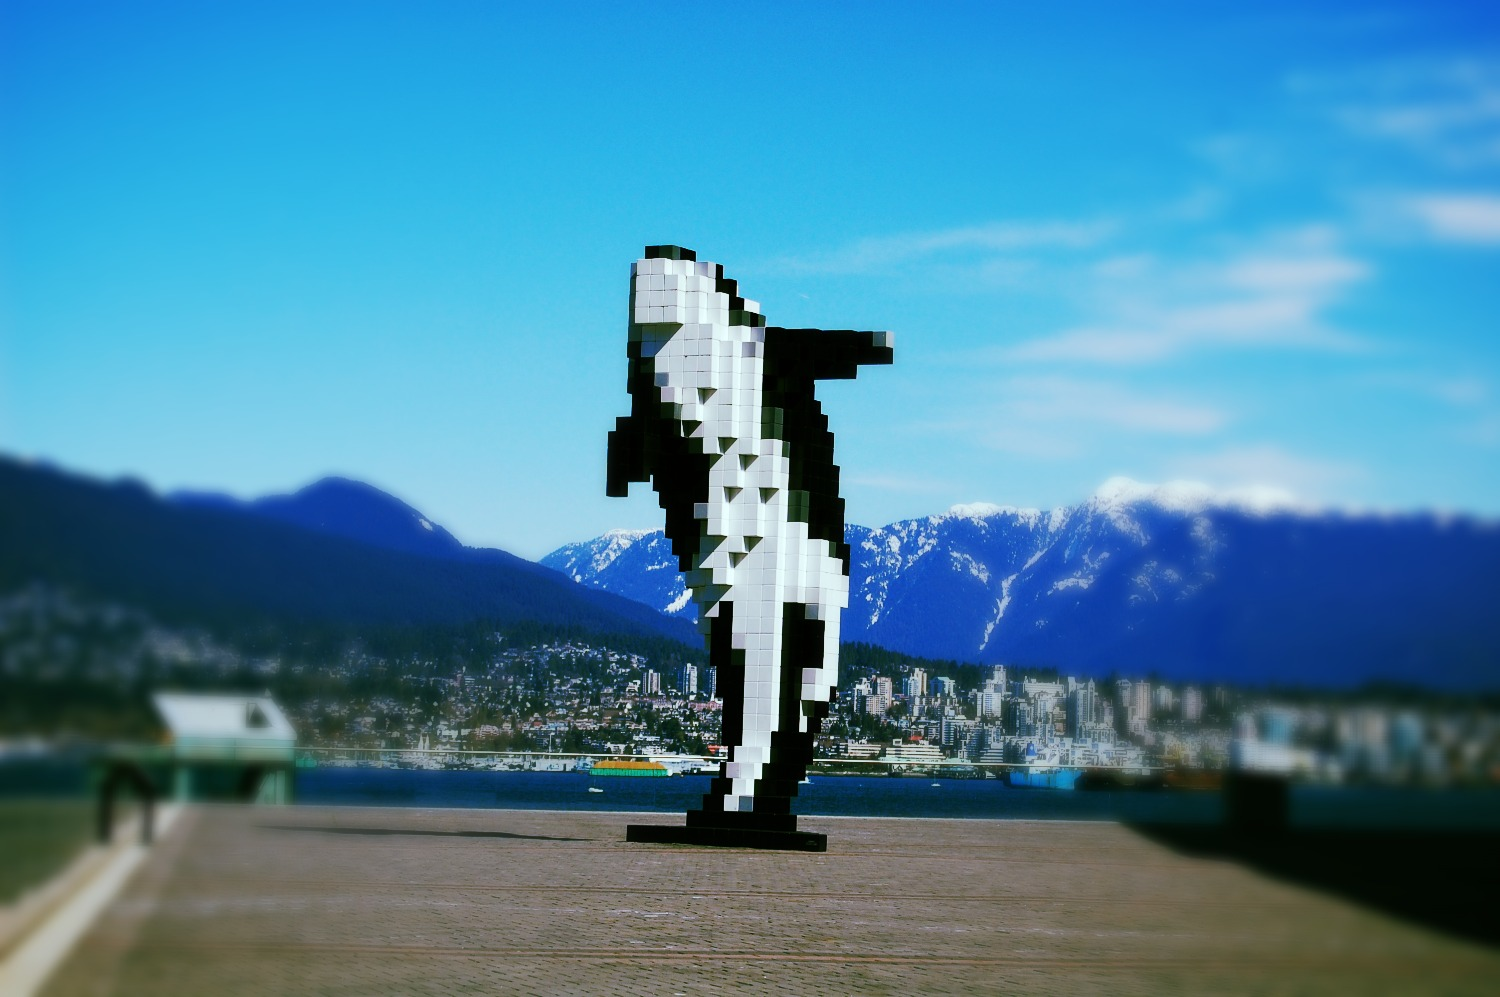 aria_capital_pixcel_whale_vancouver_edited.jpg